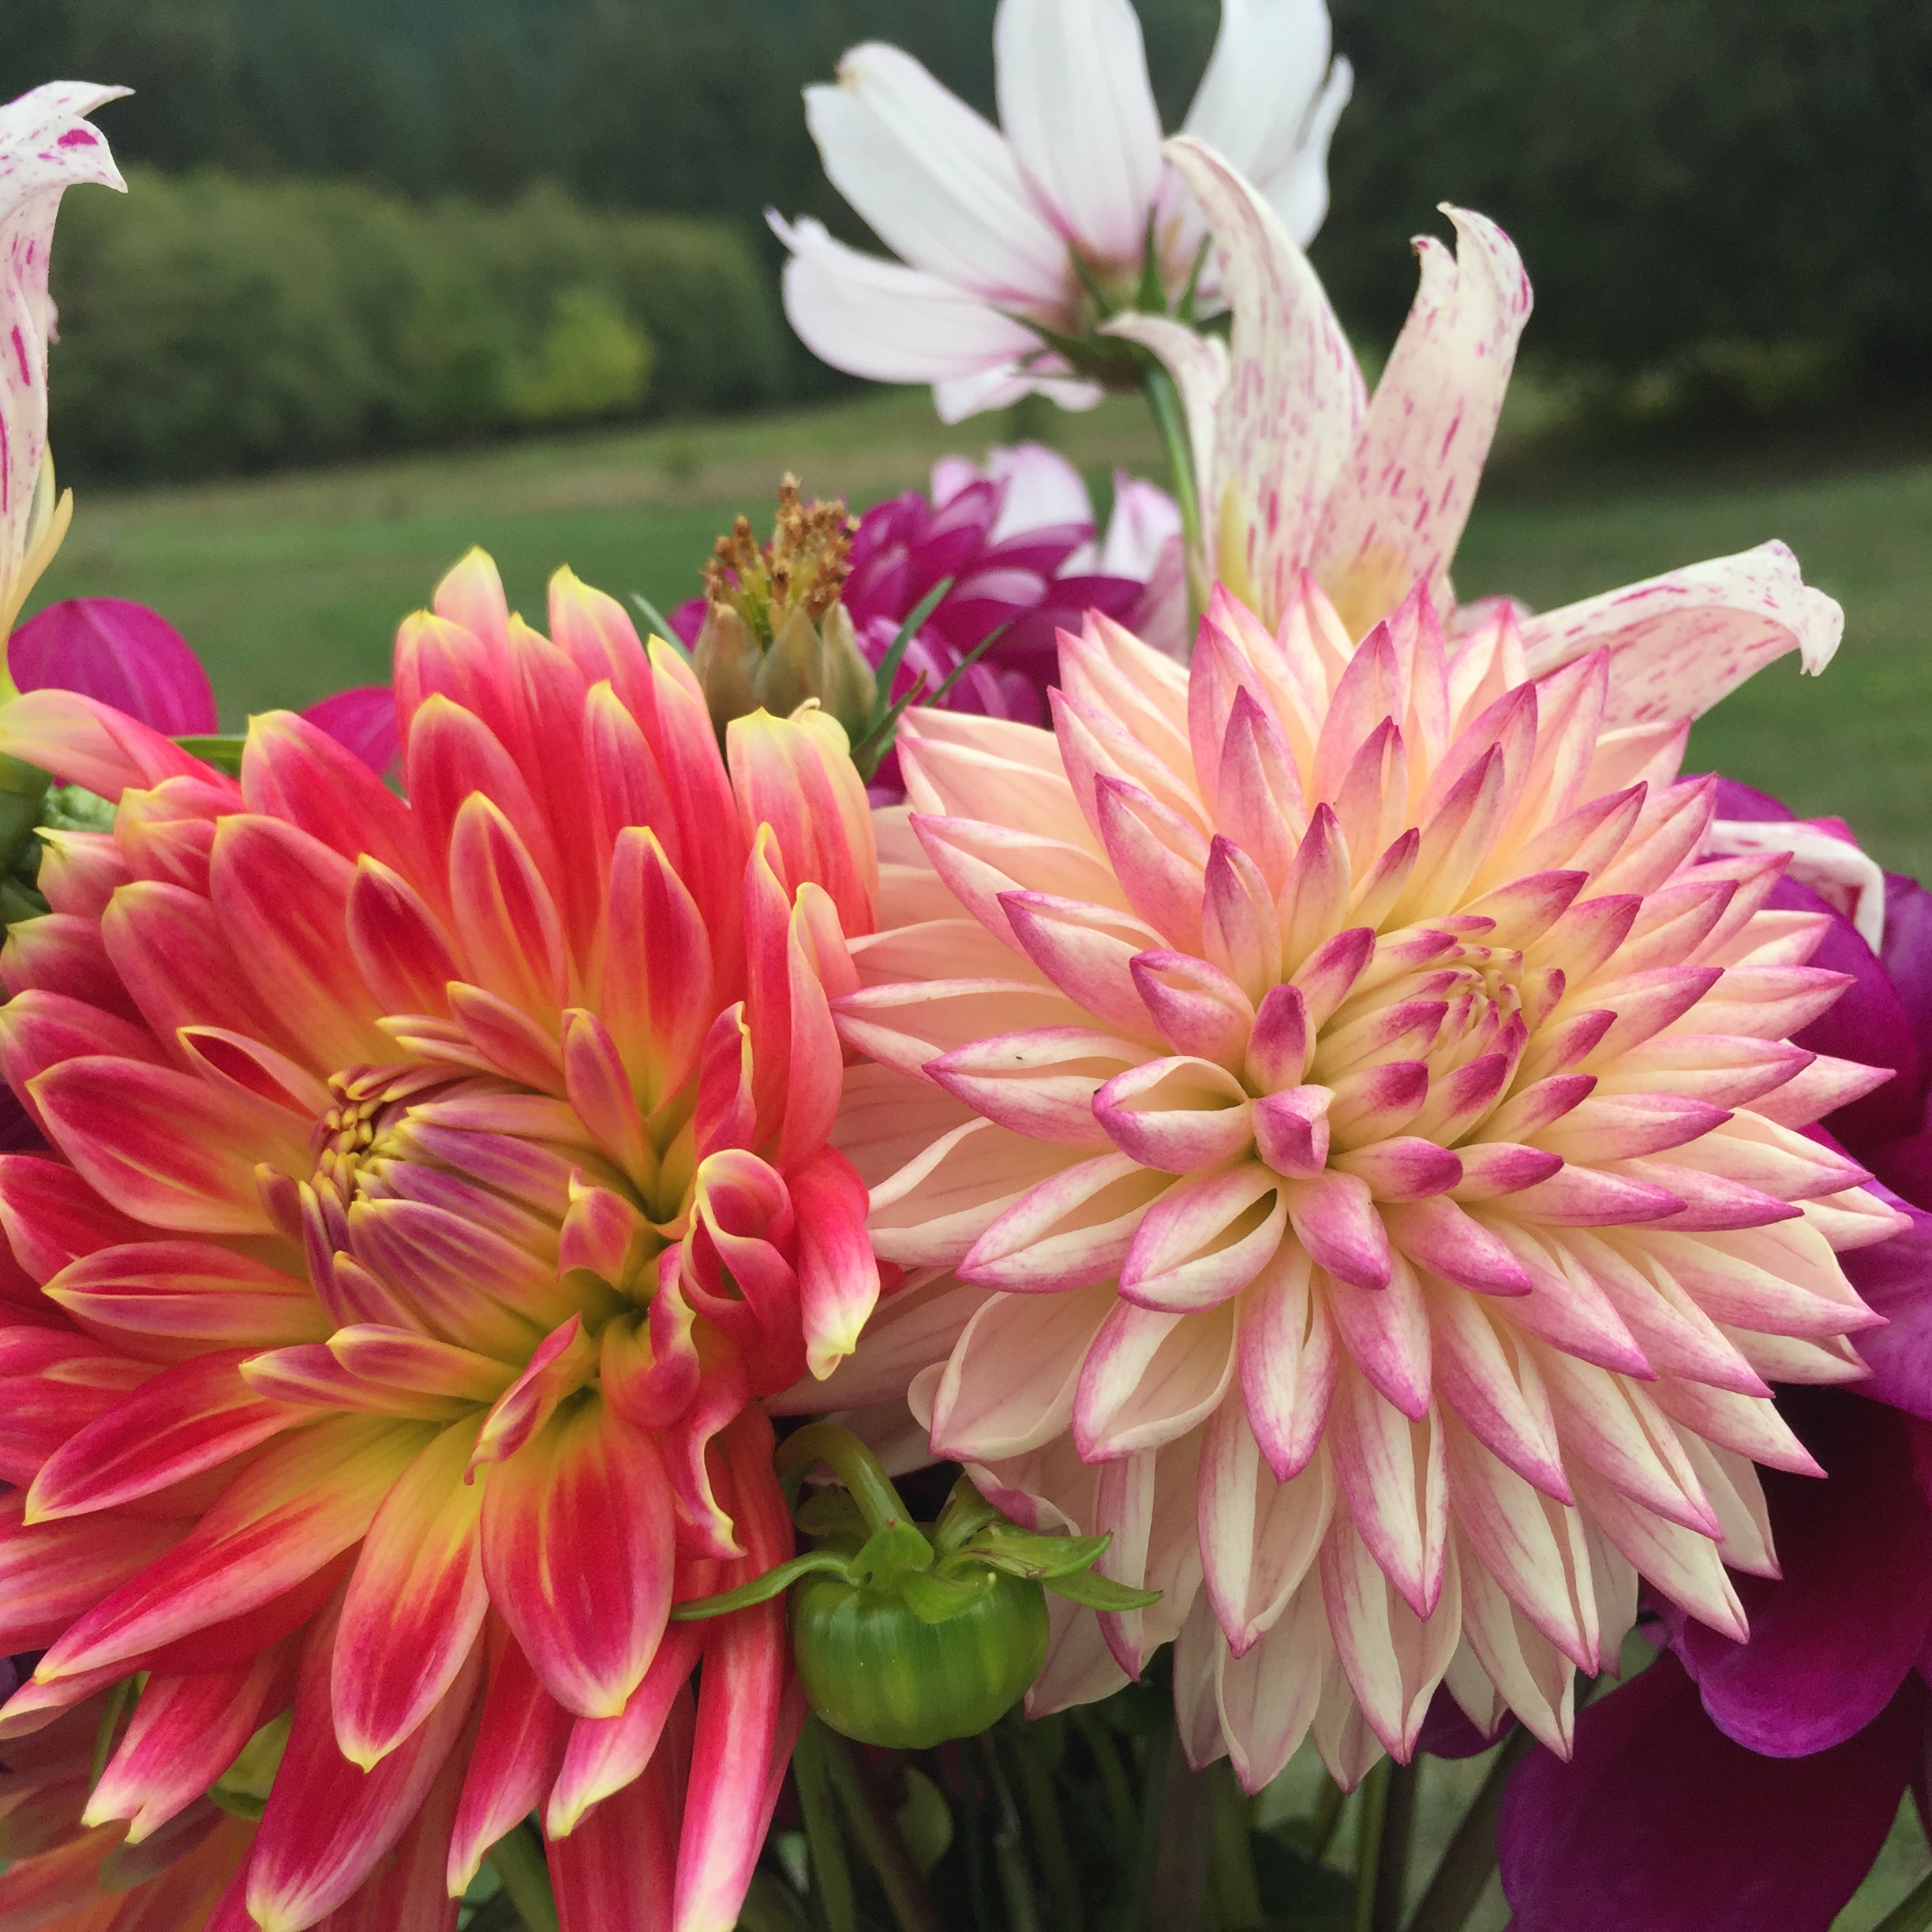 Two spikey dahlia tuber varieties 'Tutti Fruitti' and 'Valley Porcupine' in a bouquet